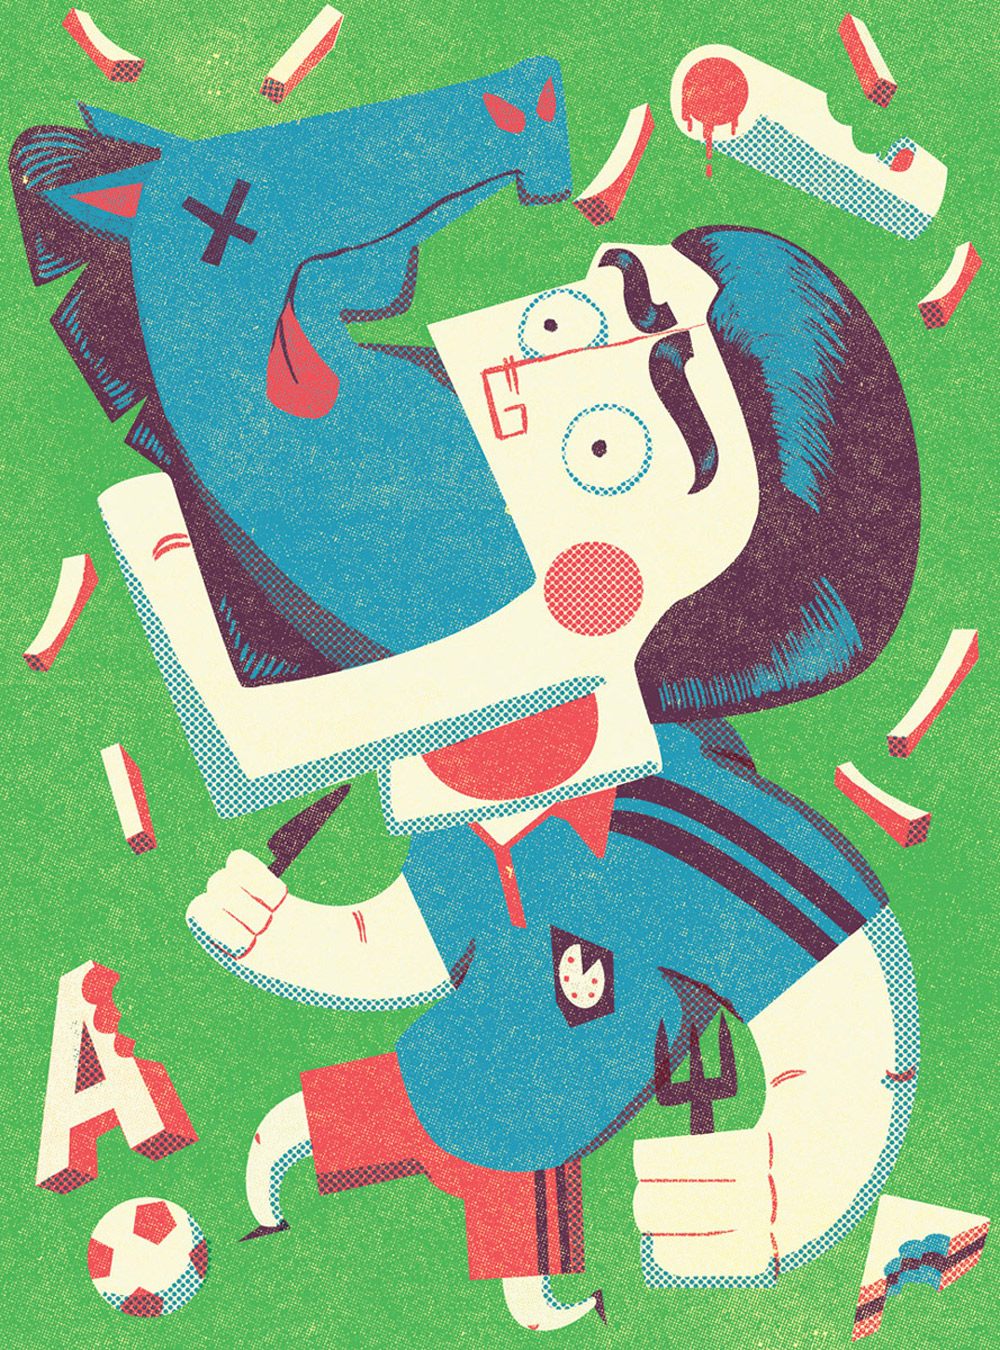 Editorial illustration for Pickles magazine, UK.